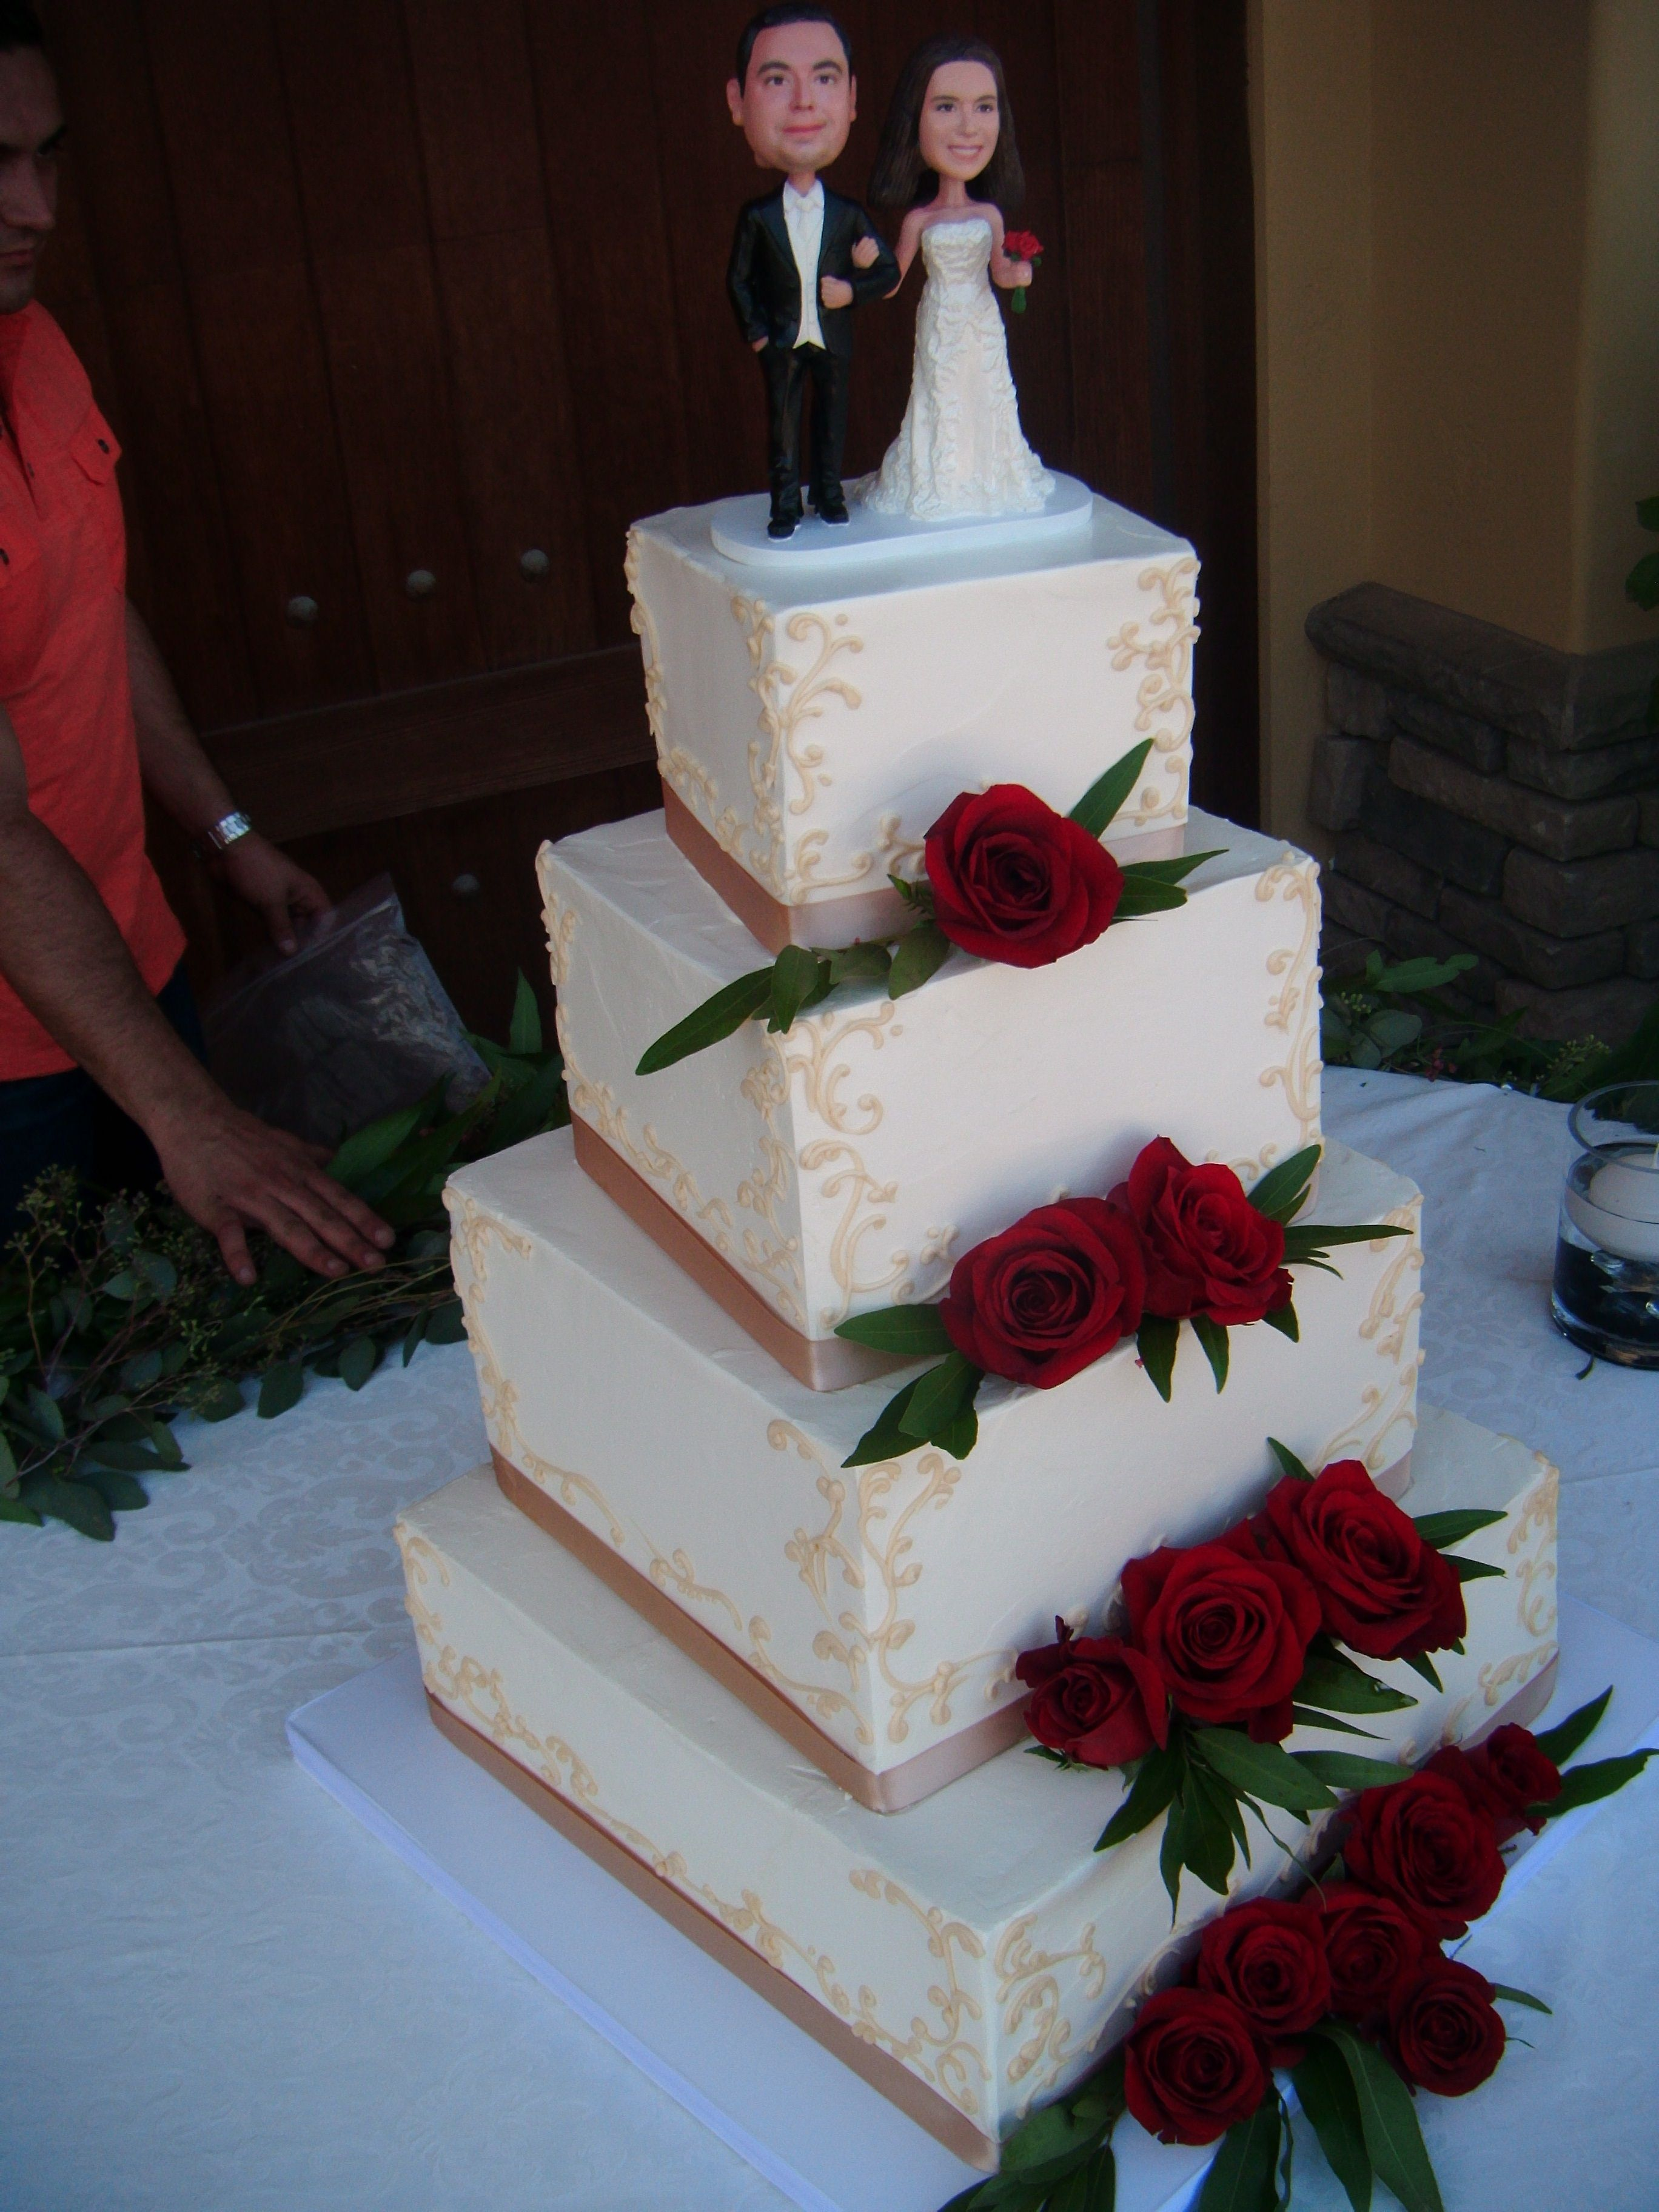 Wedding cake with red roses wedding cakes pinterest red roses